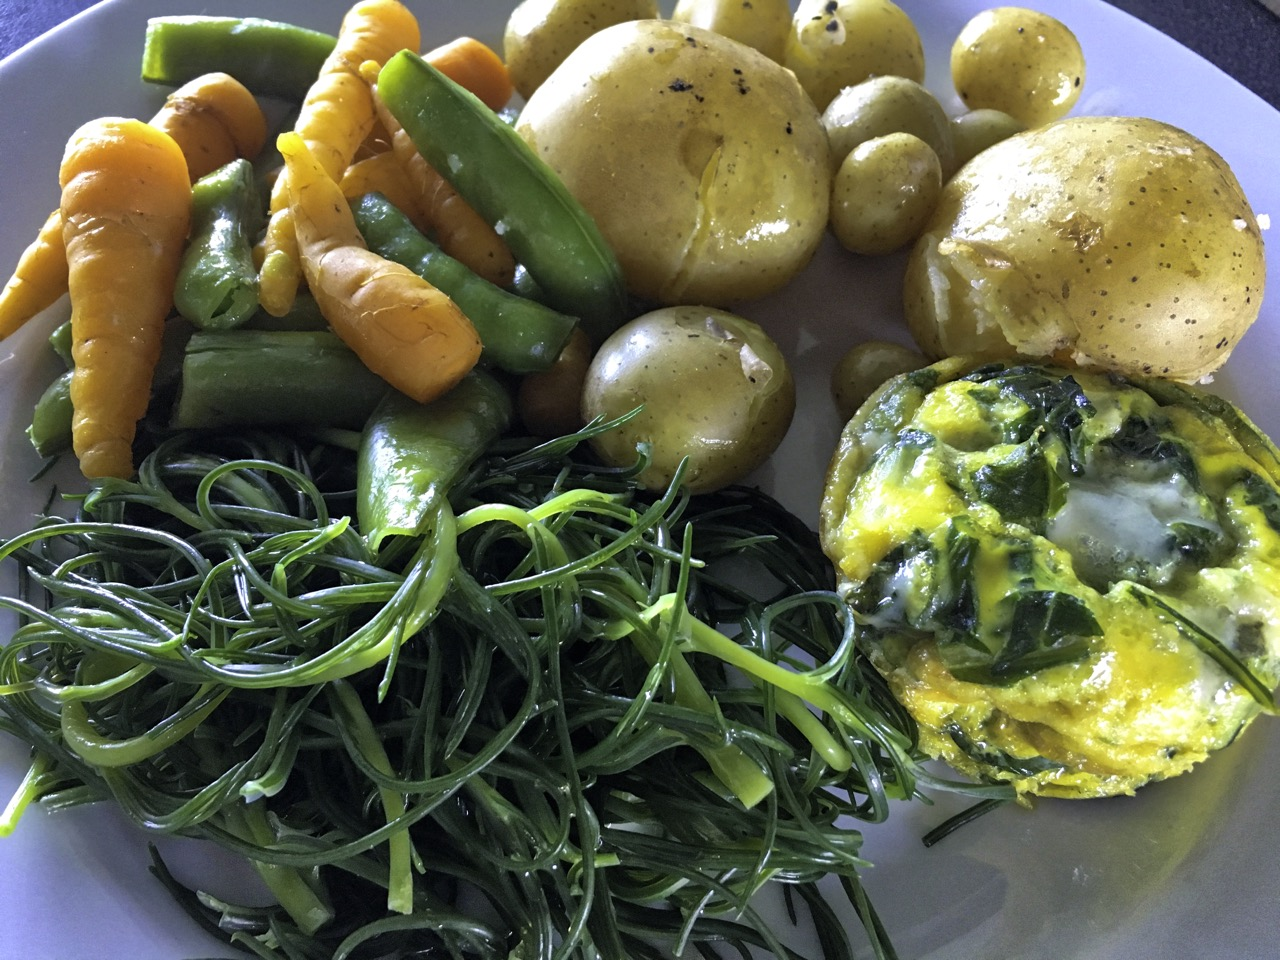 Finally making it to the table sprinkled with lemon juice and a glug of olive oil, served with Colleen potatoes, Jessy sugar snap peas and carrots from the garden. The muffin on the right comprises garden spinach & onions, Roquefort cheese and egg. C'était trop bon.